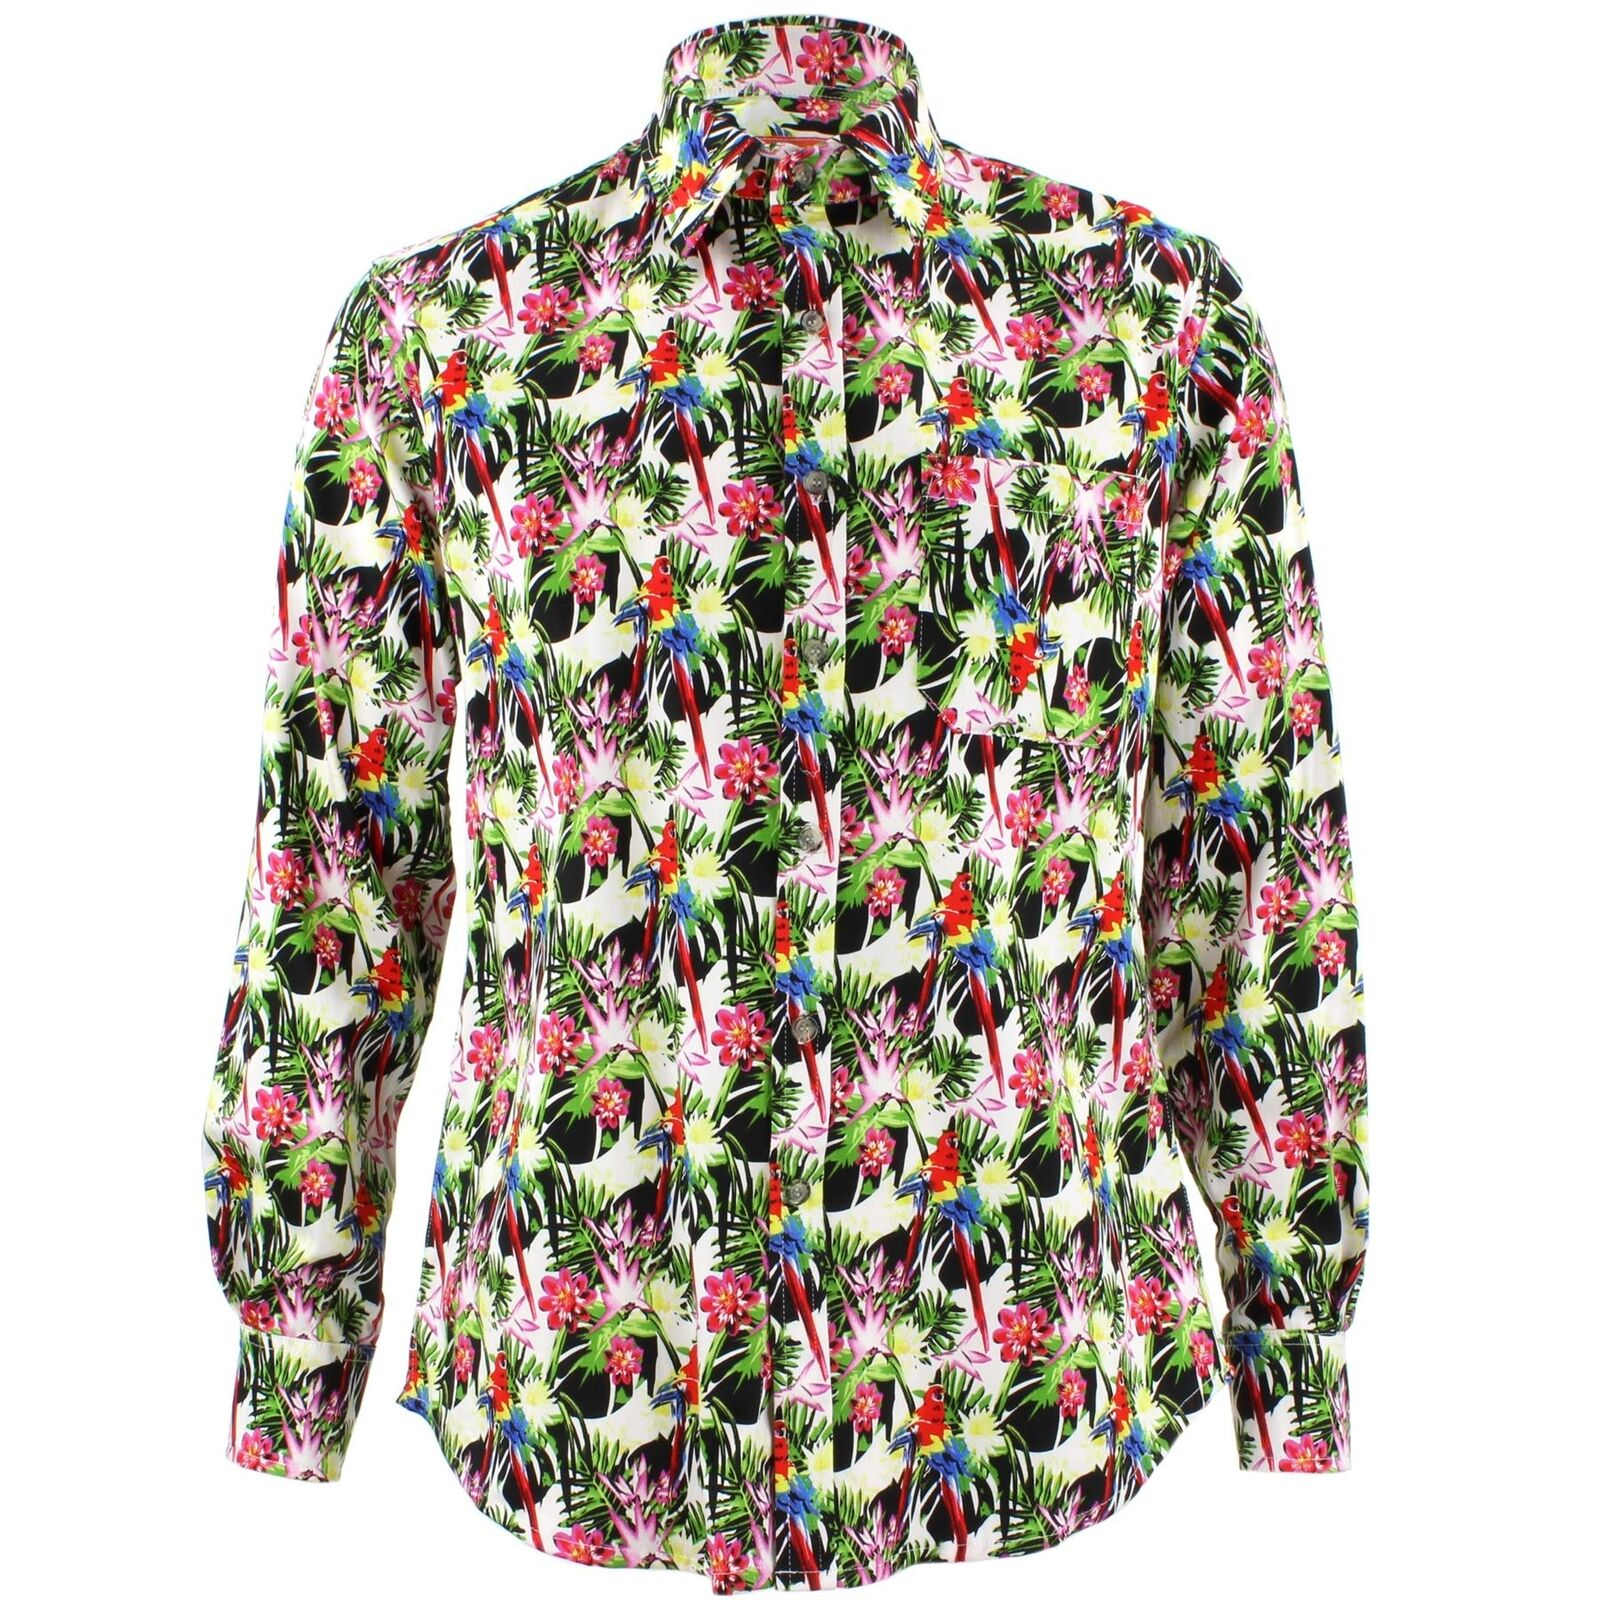 Men's Loud Shirt Retro Psychedelic Funky Party TAILORED FIT Palms Parreds